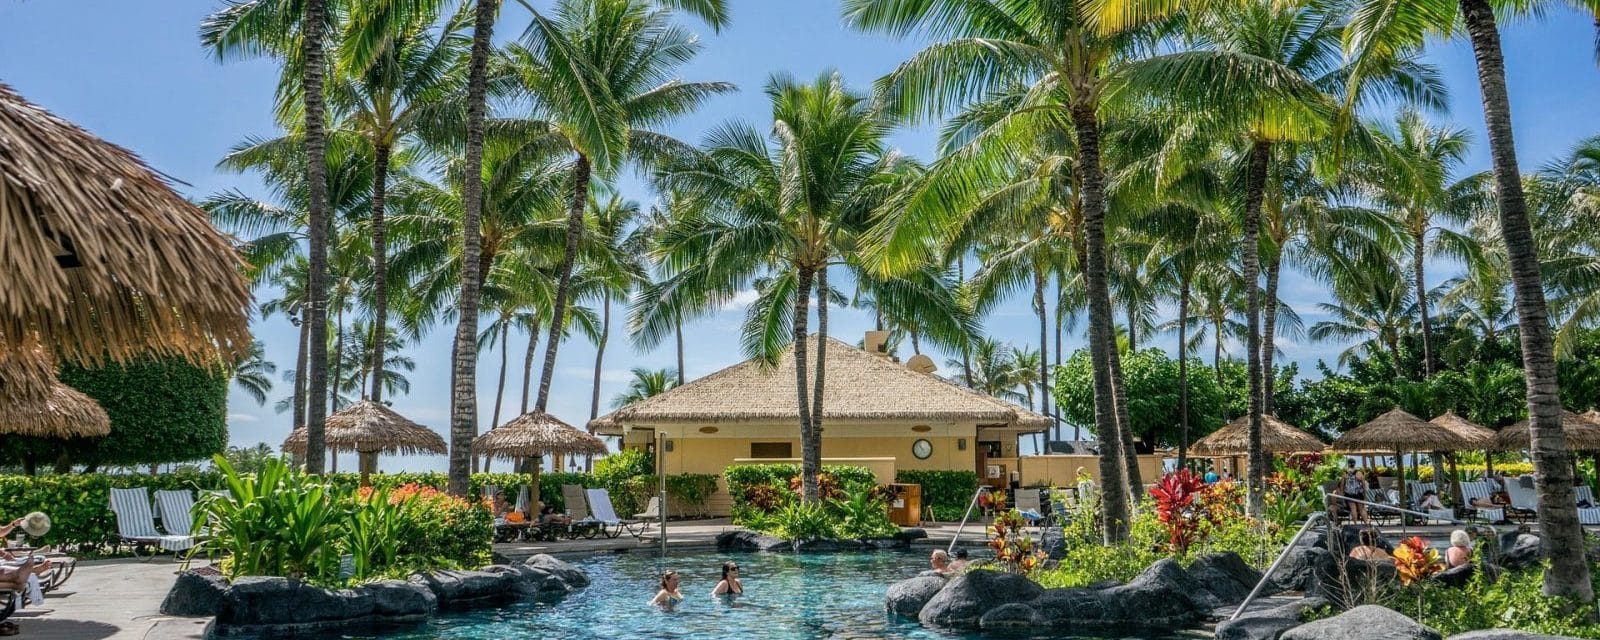 hawaii resorts with points